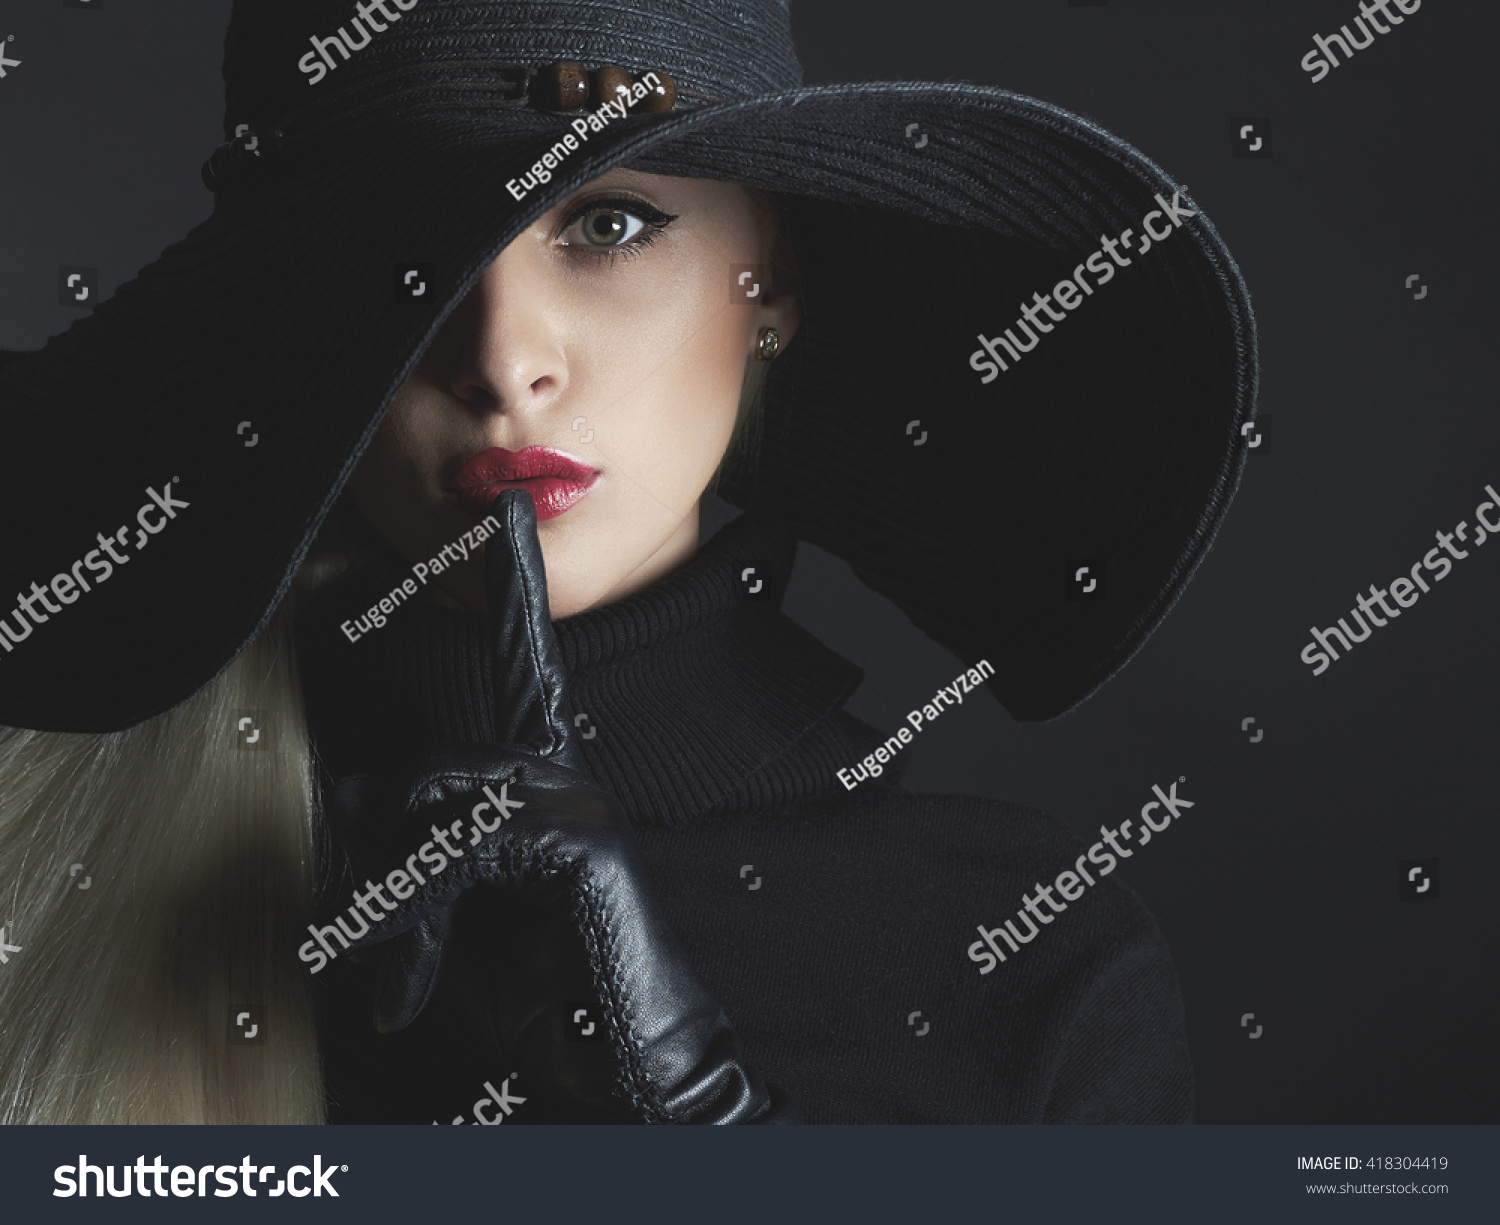 c609dc3daf5 Beautiful woman in hat and leather gloves. Retro fashion model girl ...